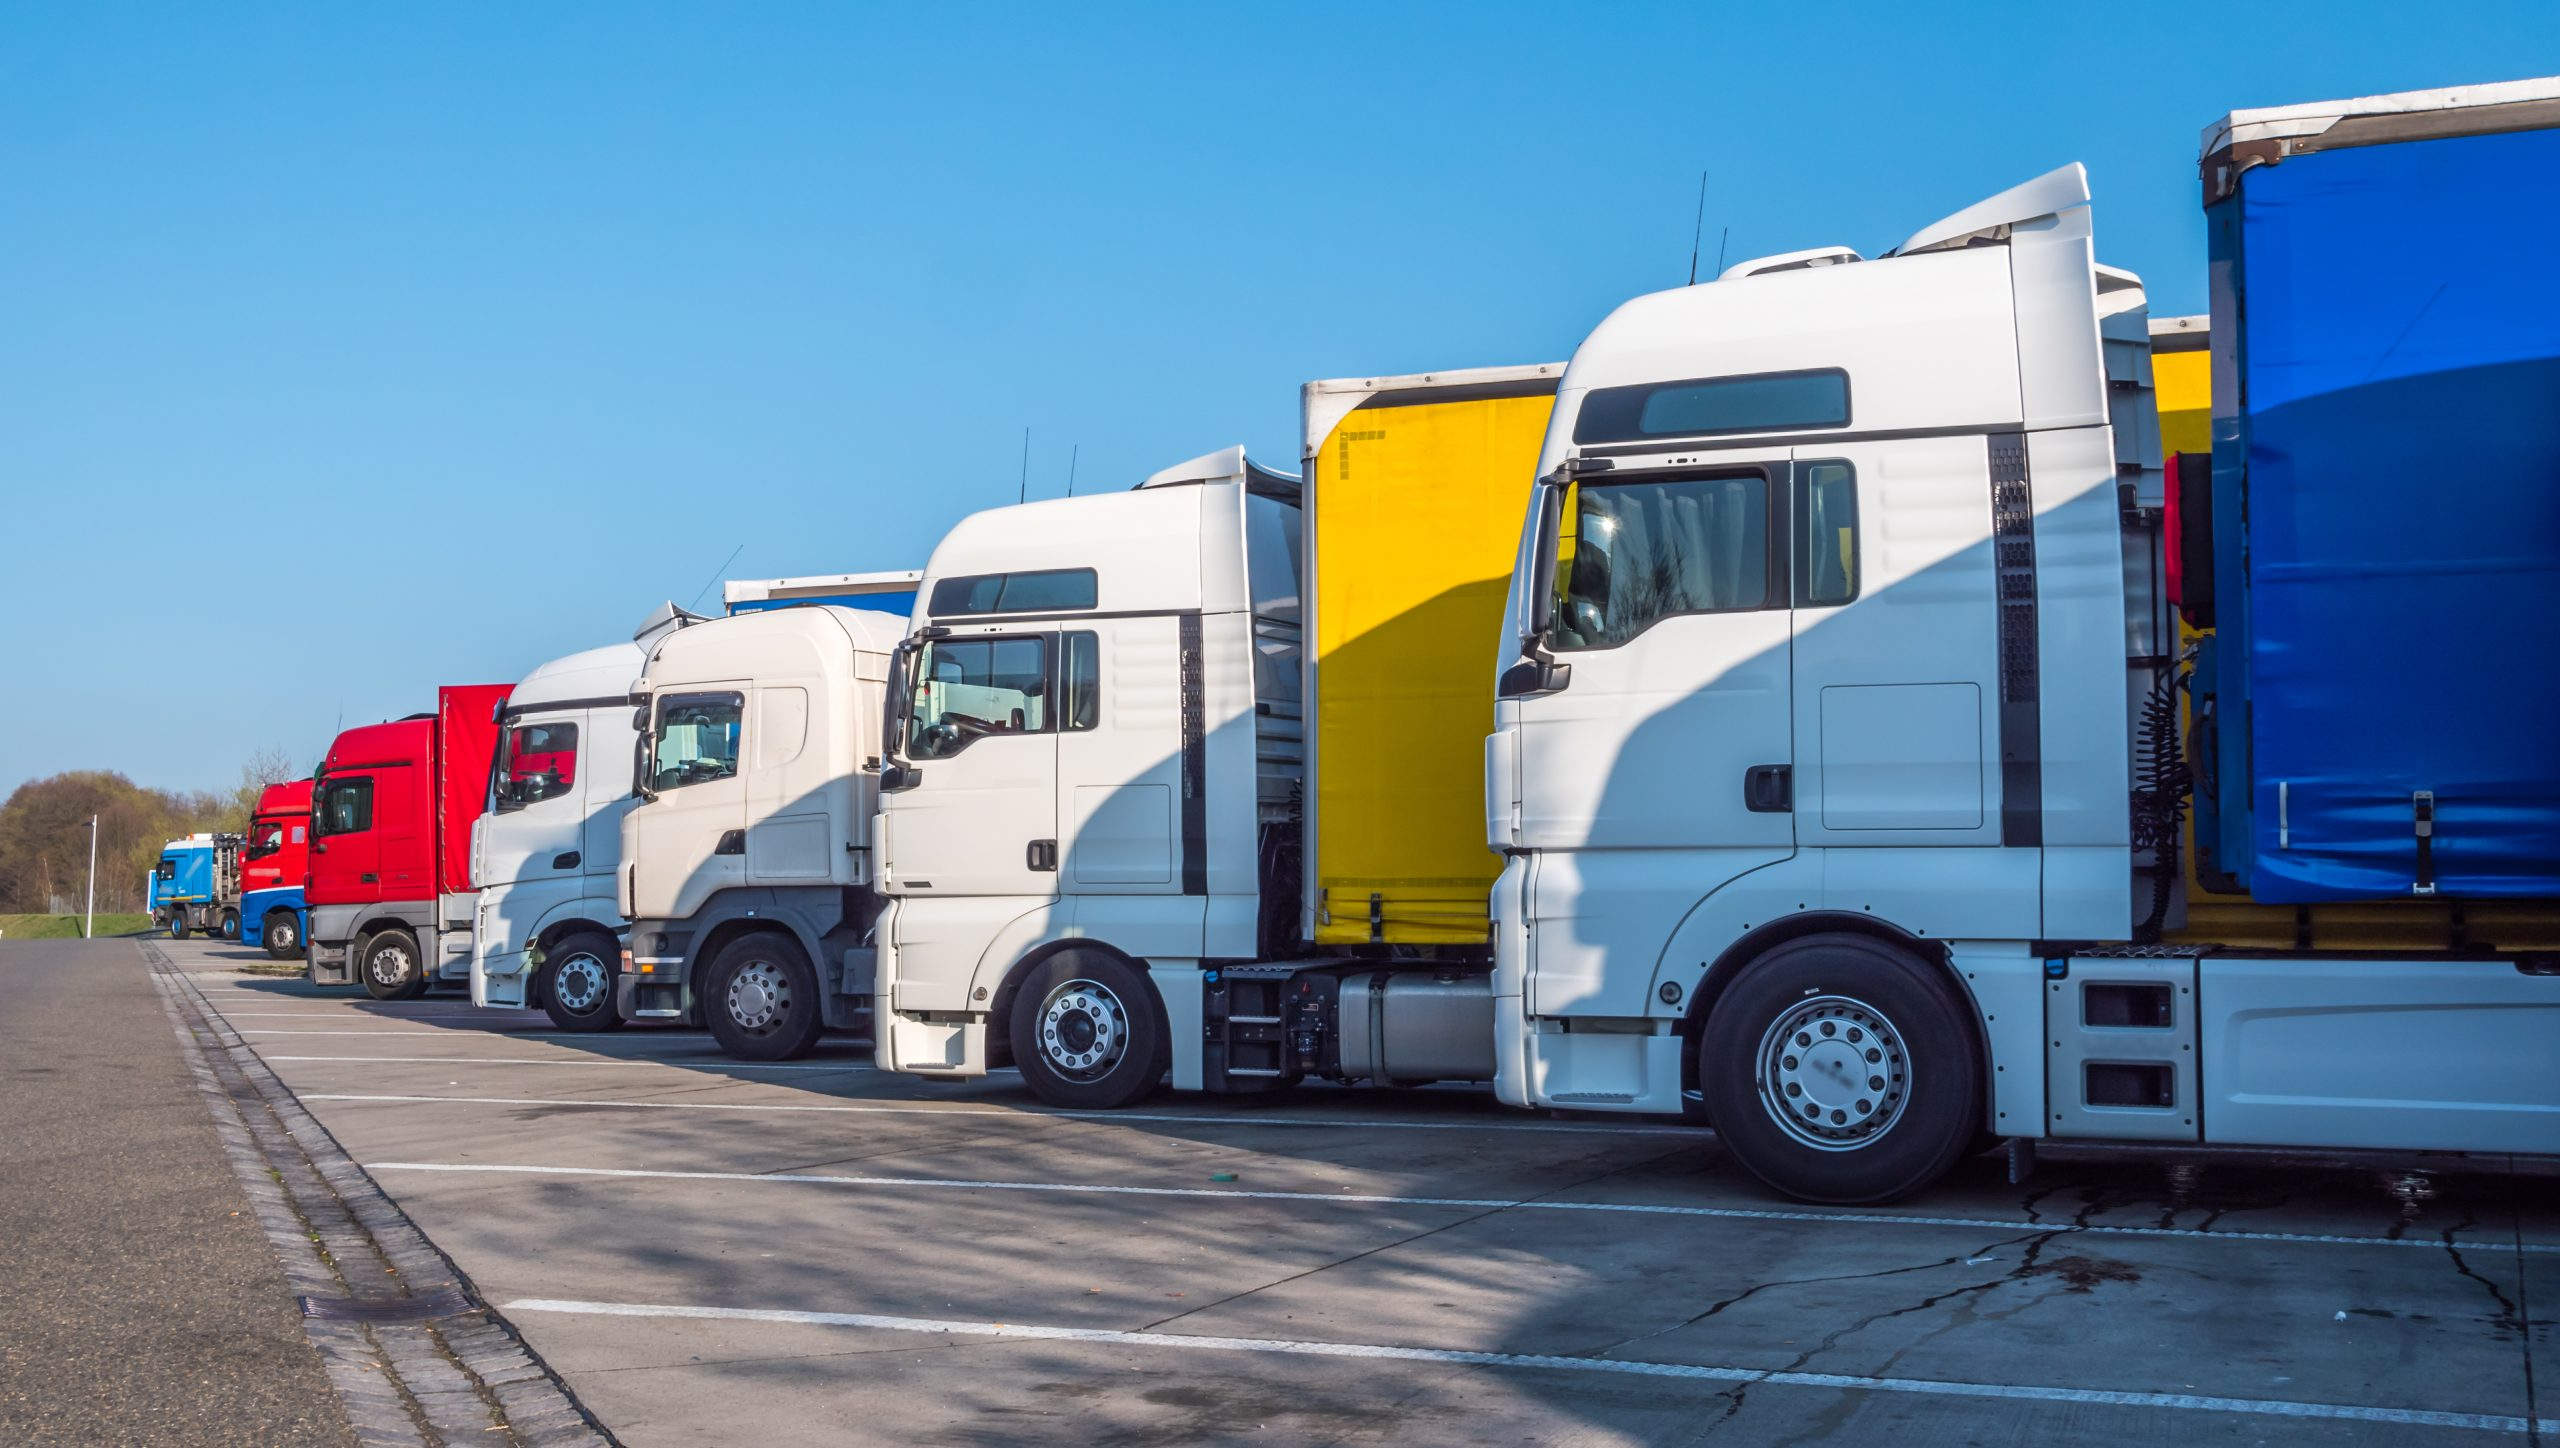 How much does it cost a Fleet haulage Insurer to break even when pricing your insurance?